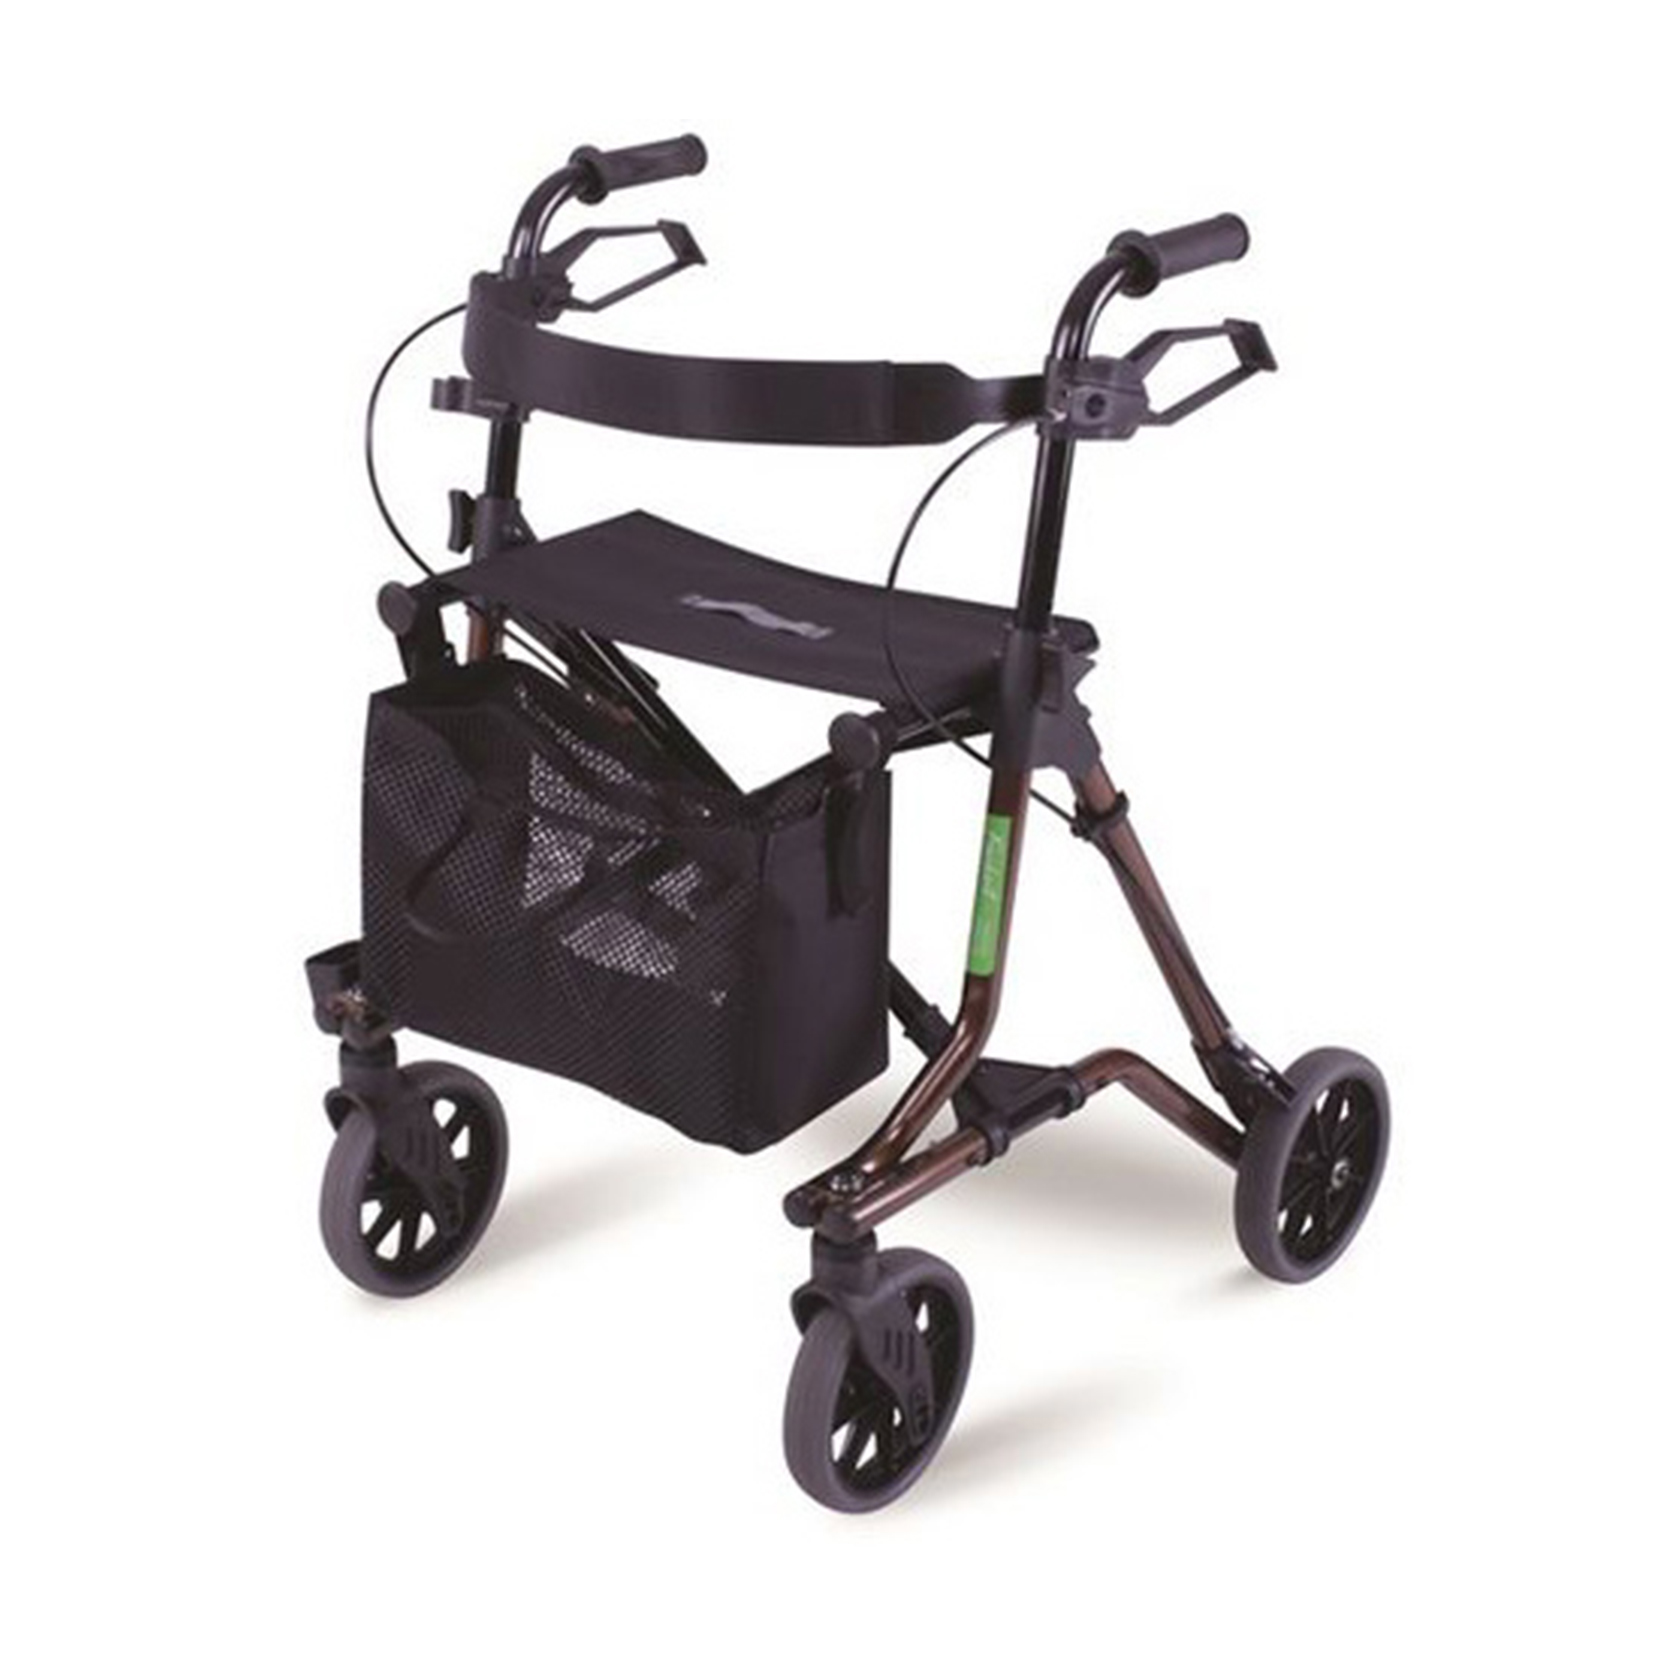 Freiheit Freedom Walker - All terrain, down the beach or across the paddockVisit the store to learn more →